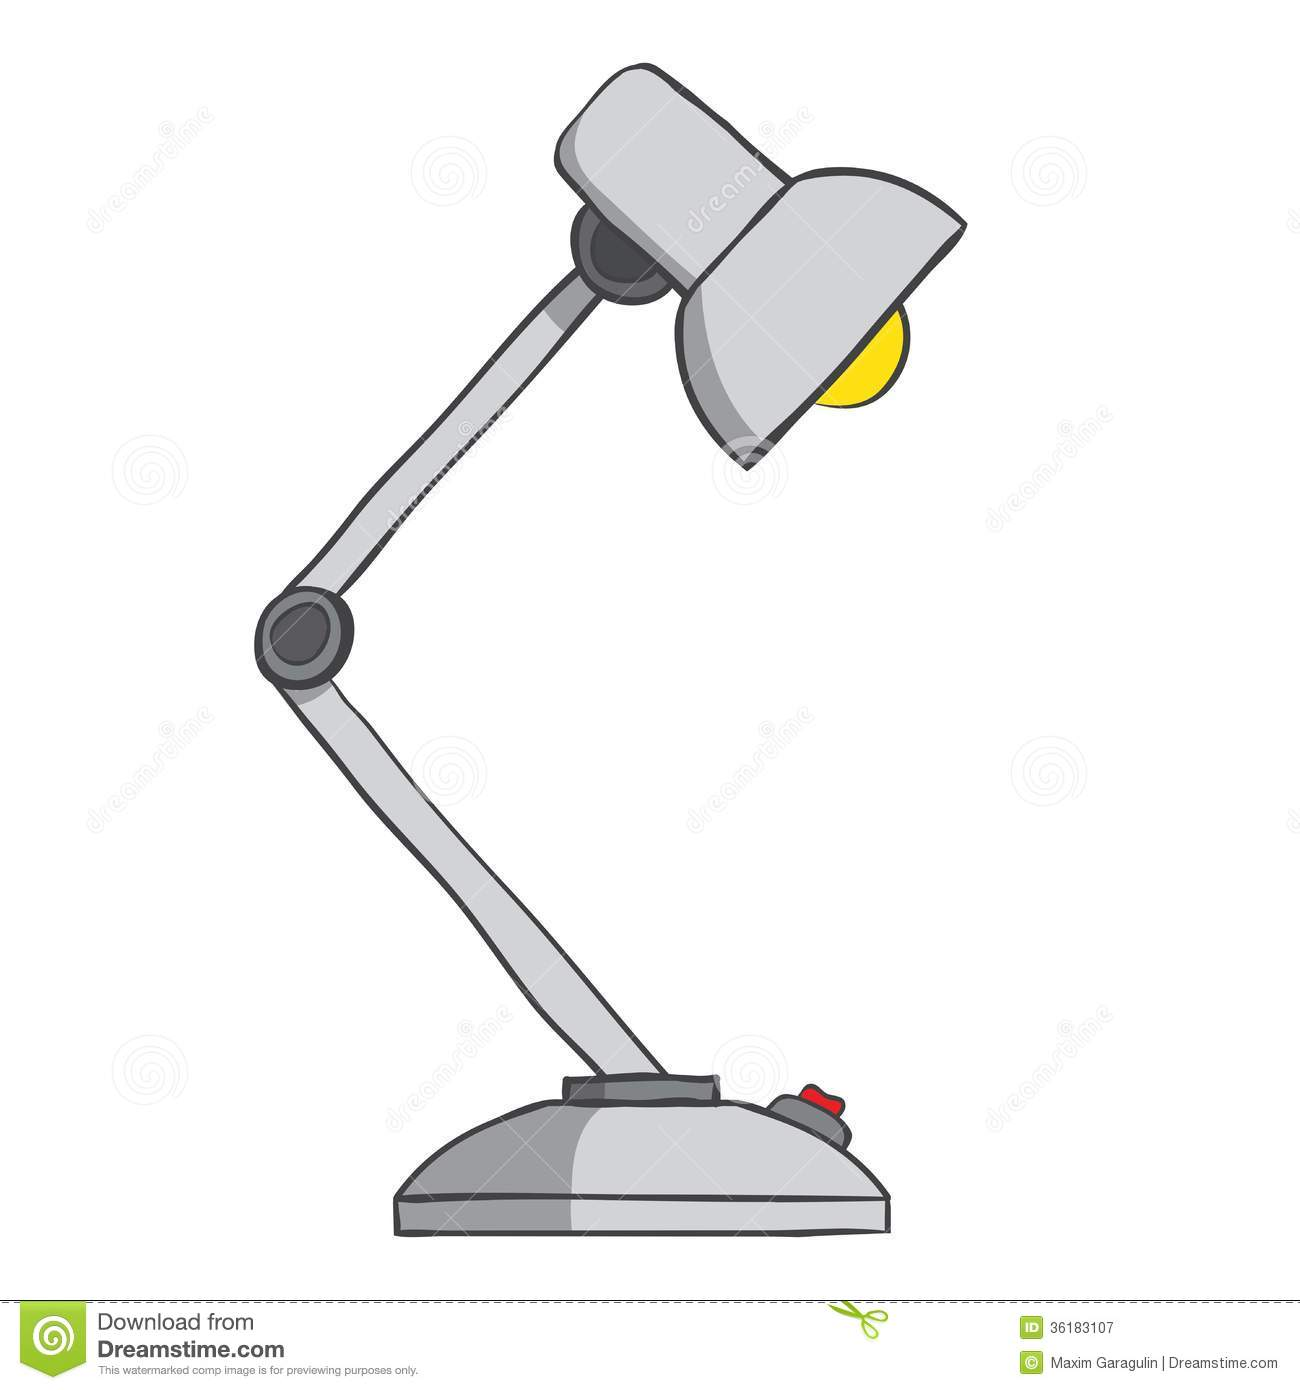 Royalty Free Desk Lamp Clip Art Vector Images: Restaurant Table Lamp Clipart